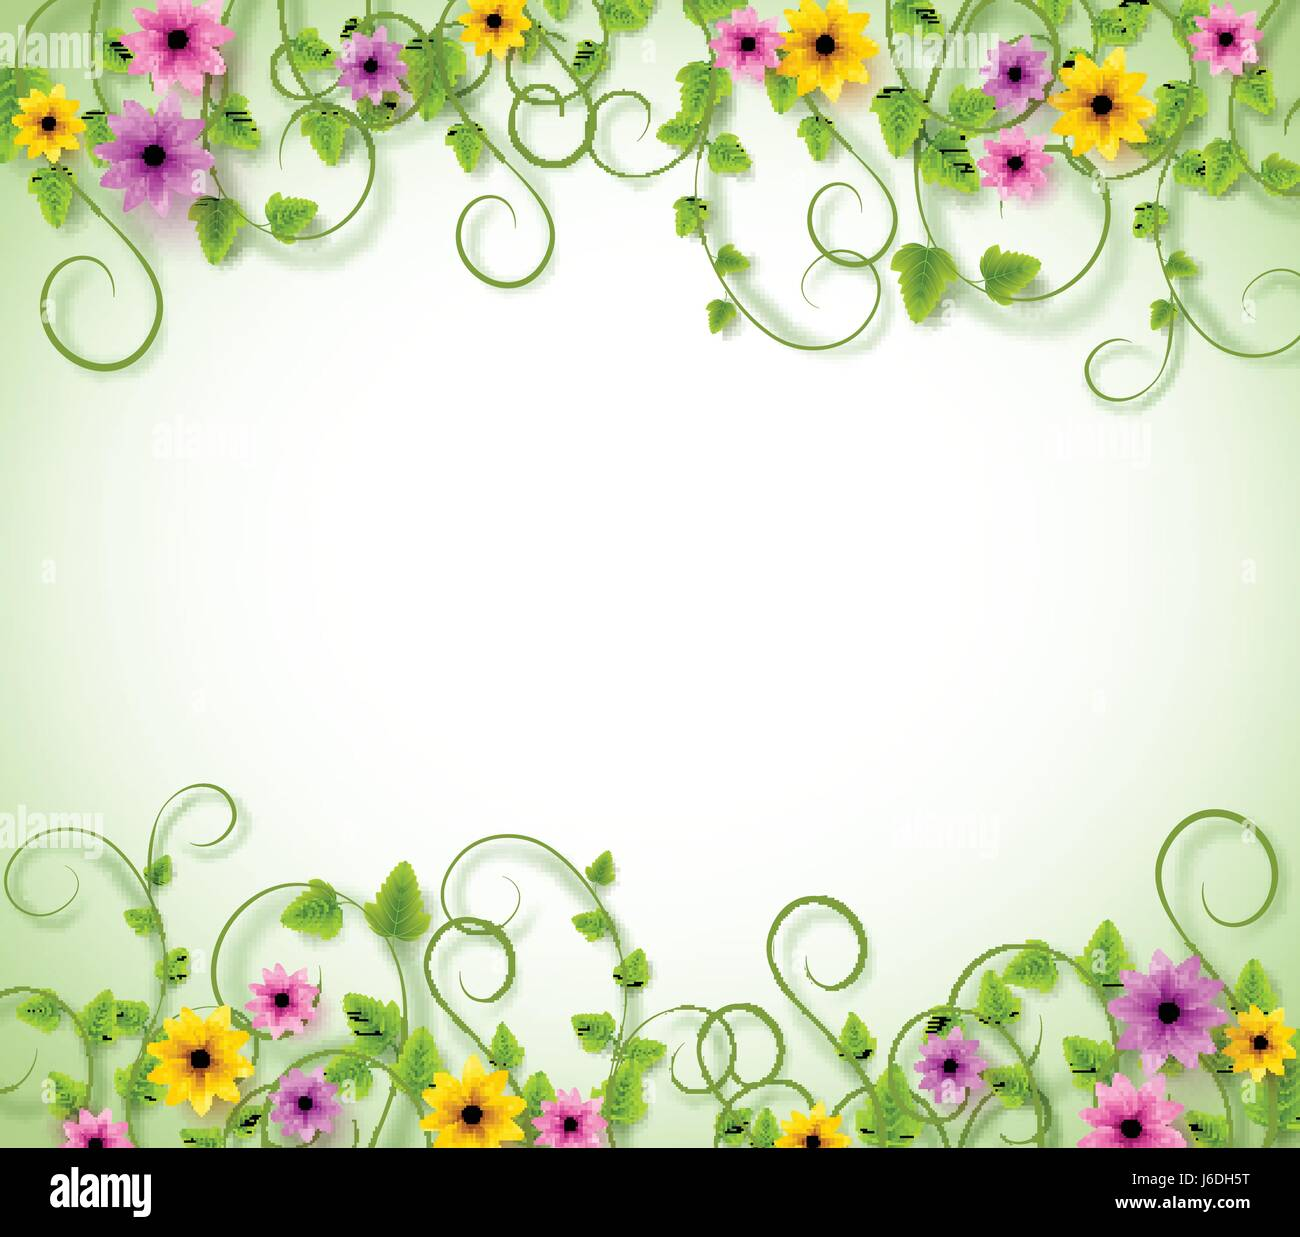 Vines Vector Background for Spring Season with Realistic